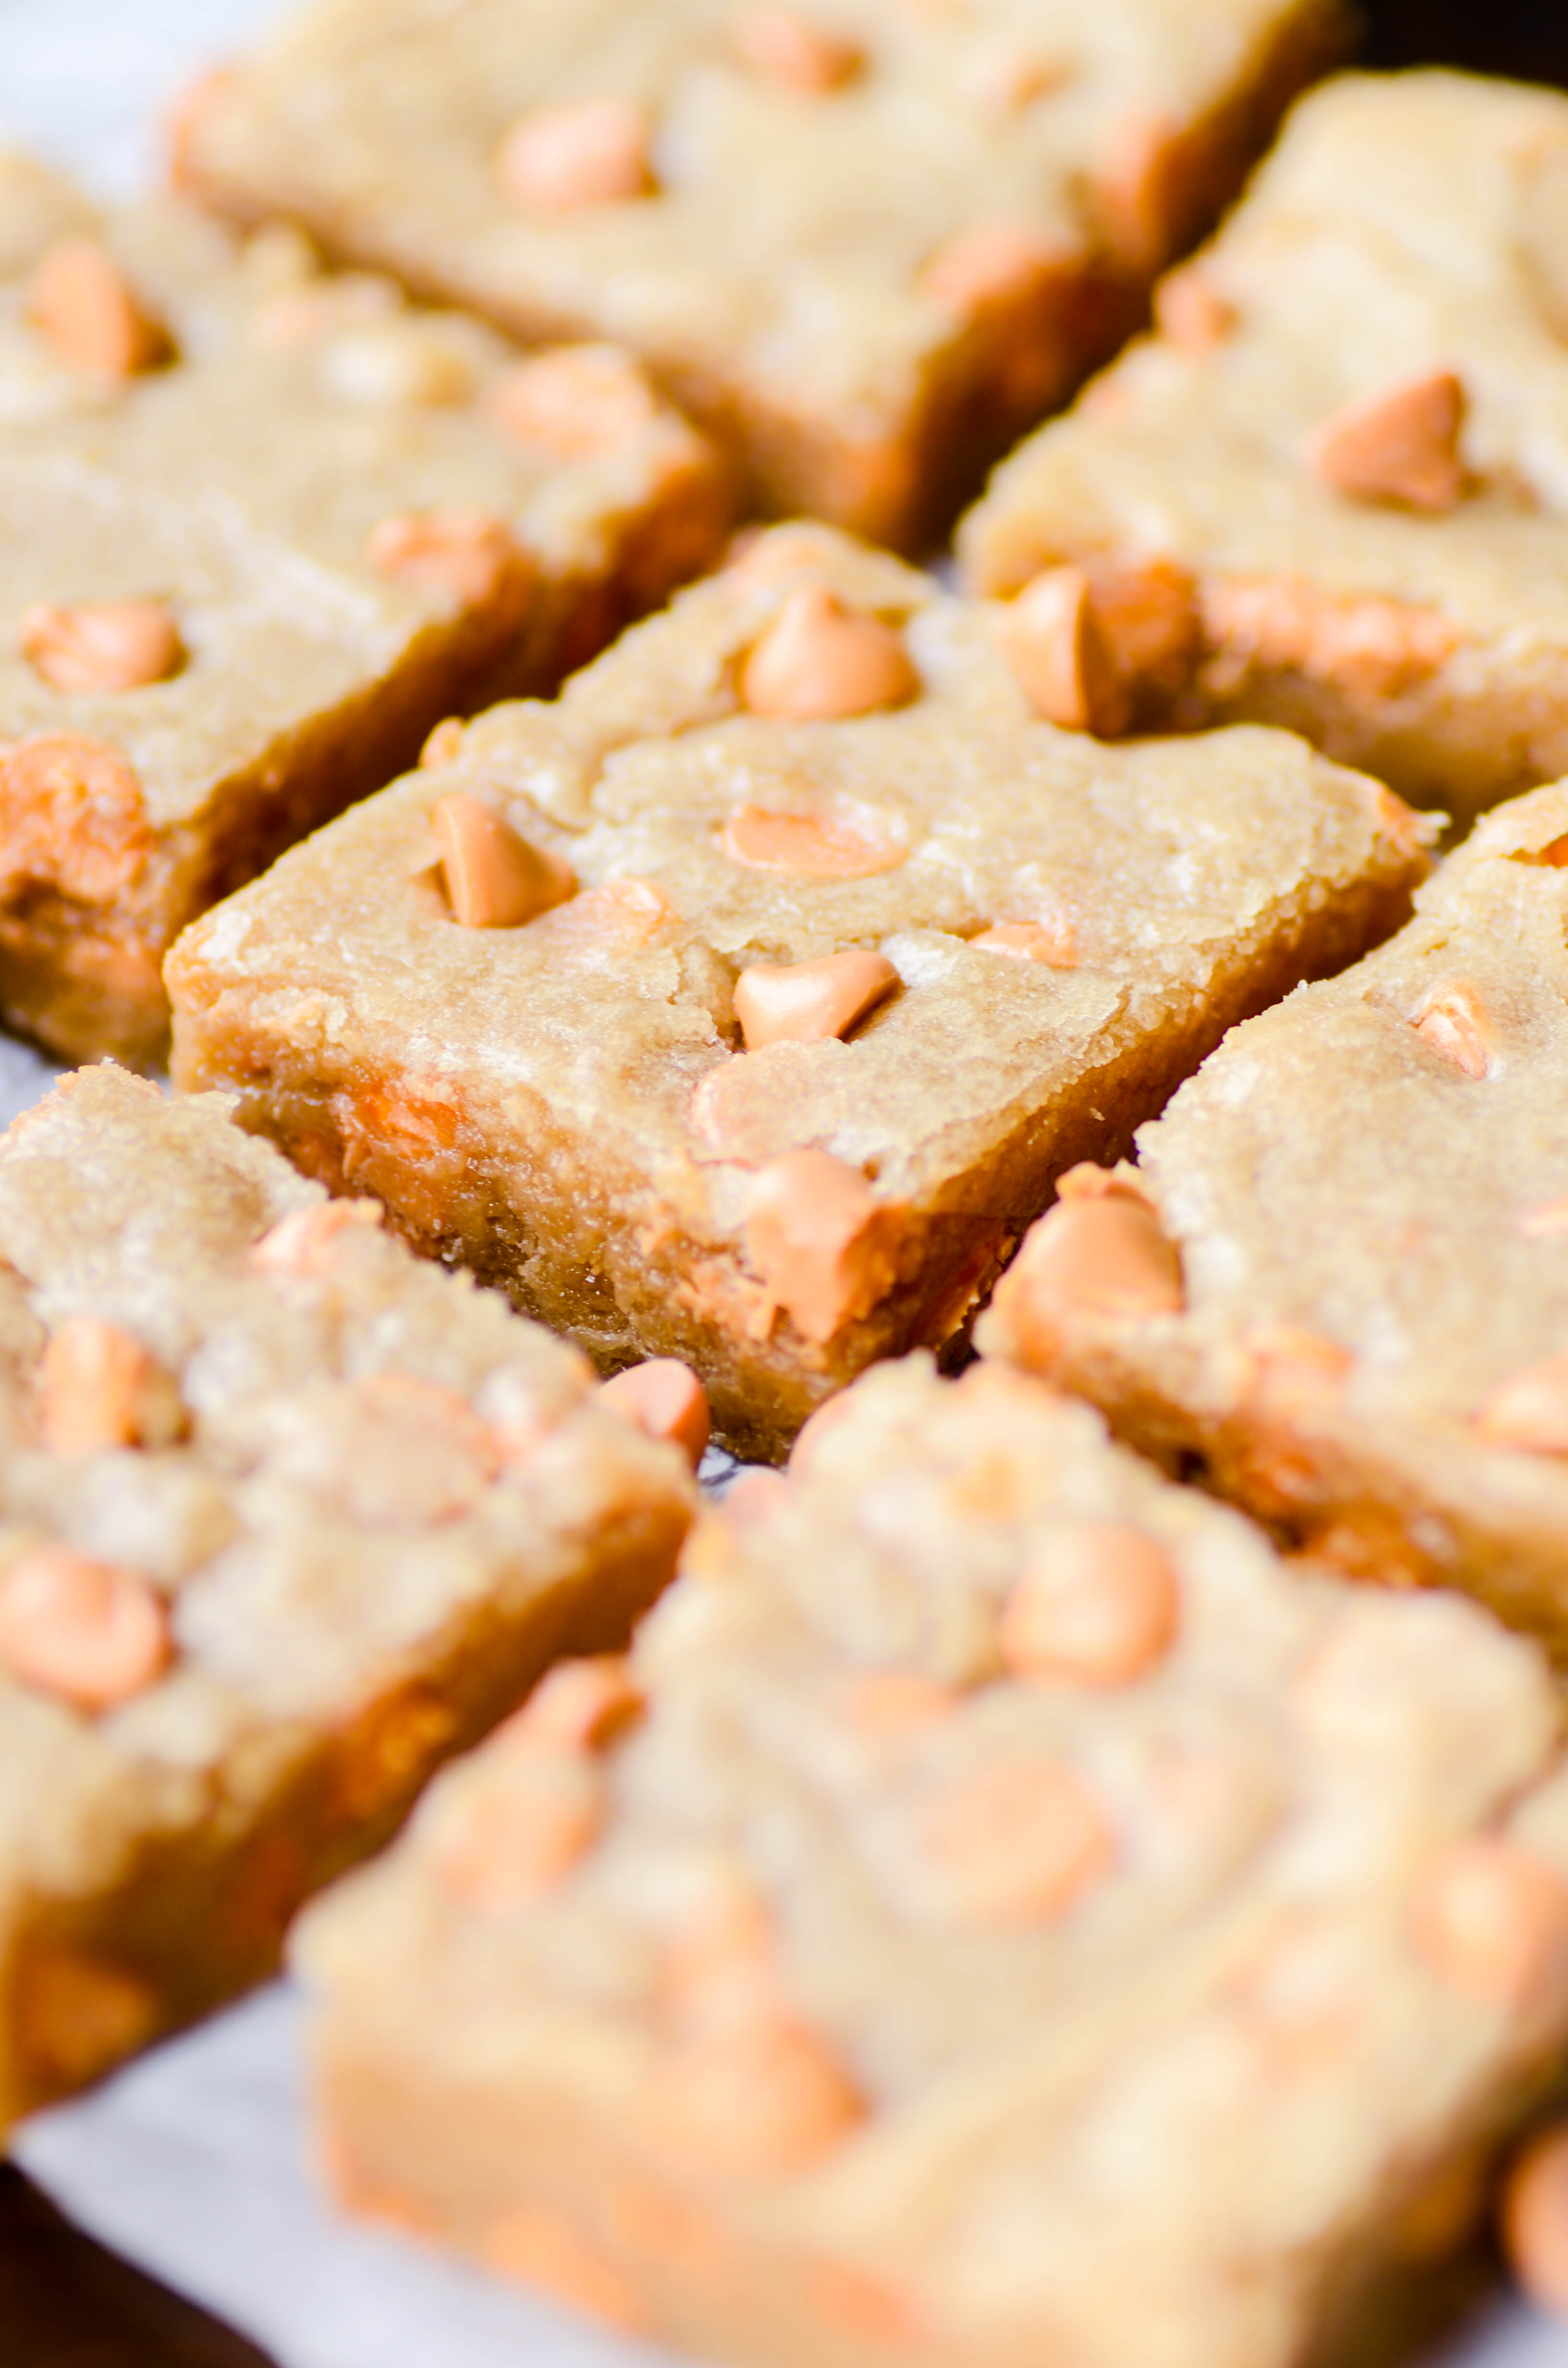 These chewy, fudgy butterscotch blondies require no mixer and very little prep work. Their crackly golden tops and gooey centers are utter perfection!